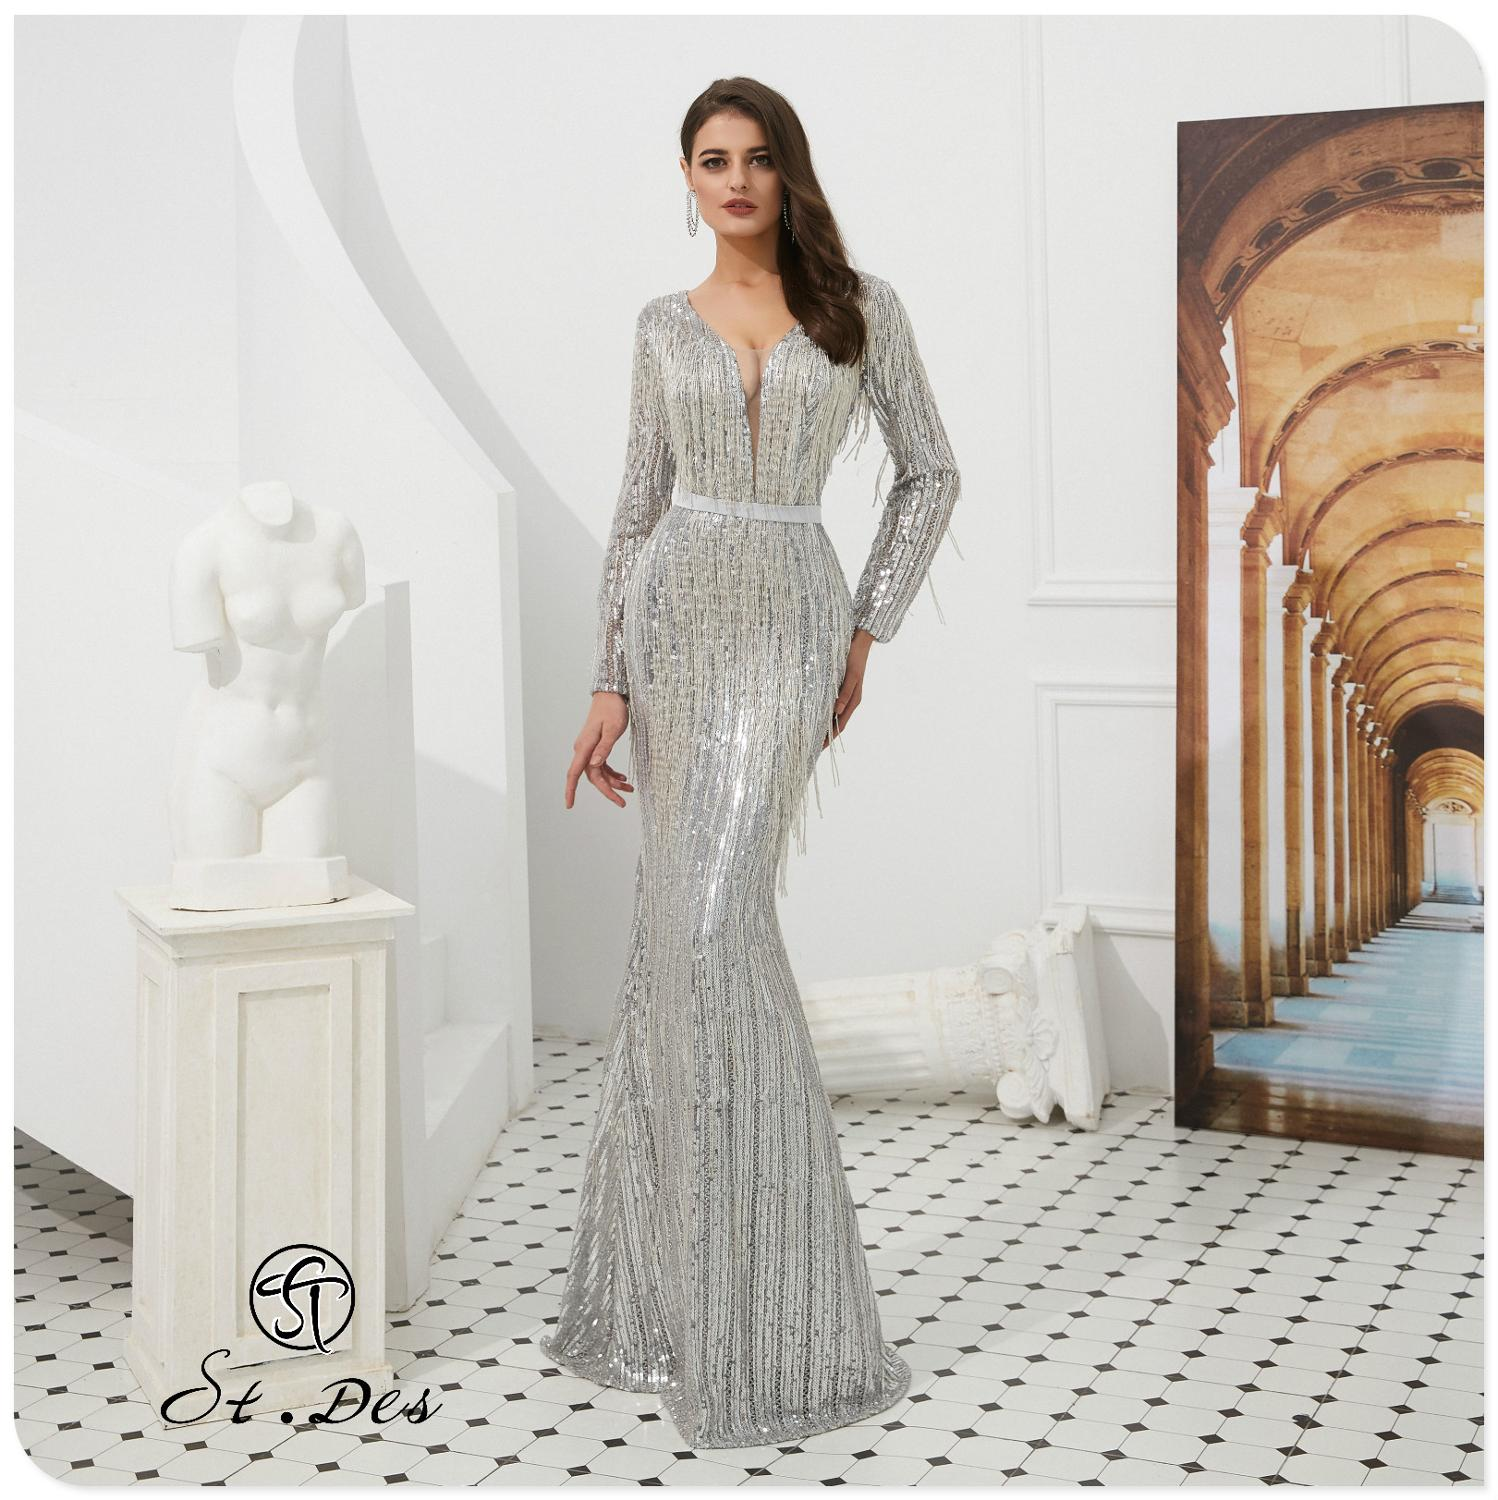 NEW Arrival 2020 St.Des Mermaid V-Neck Russian Sliver Long Sleeve Designer Floor Length Evening Dress Party Dress Party Gown